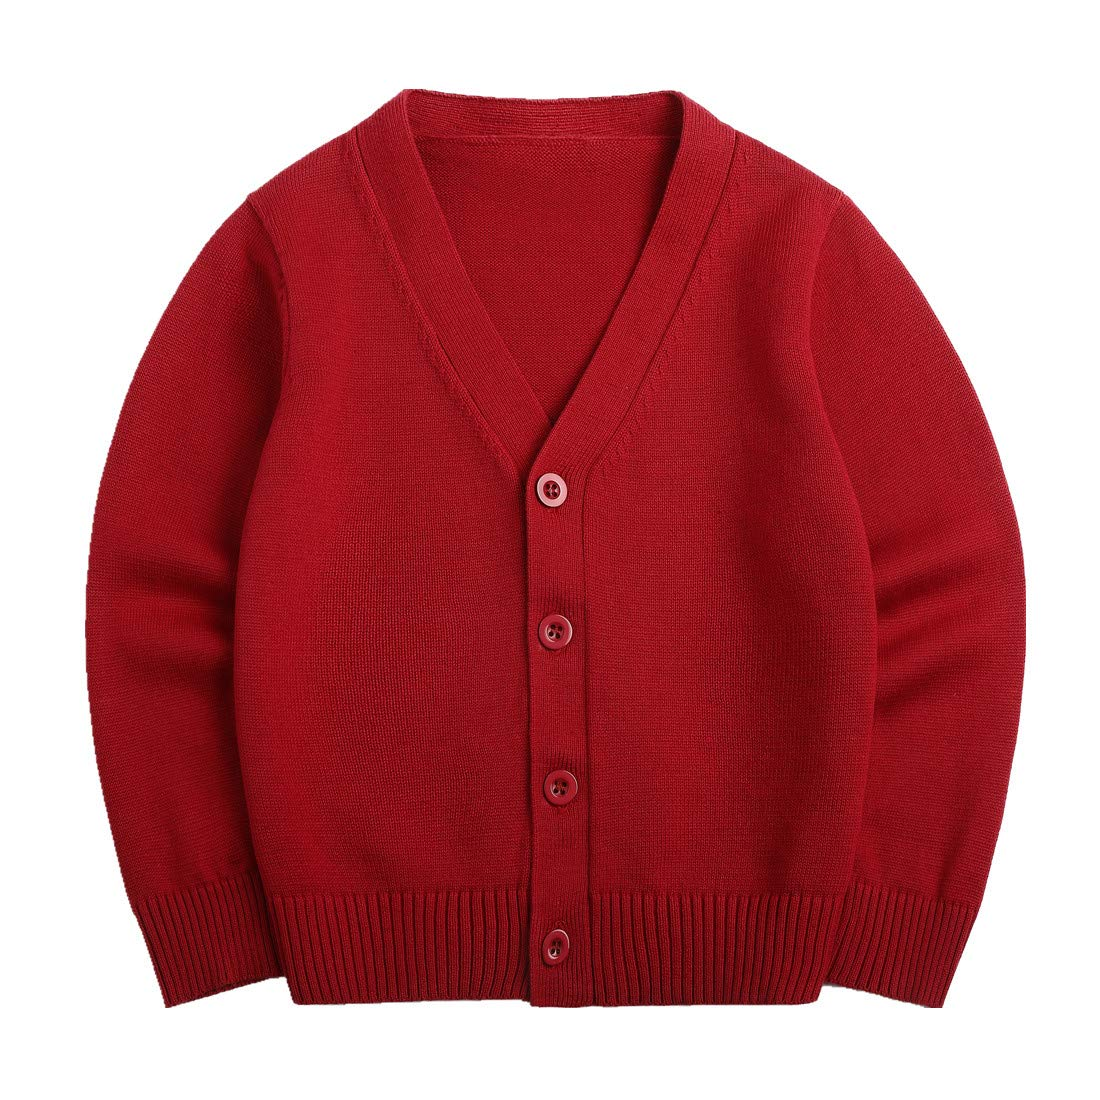 Sooxiwood Little Boys Cardigan Coat V-Neck Striped Size 4T Red